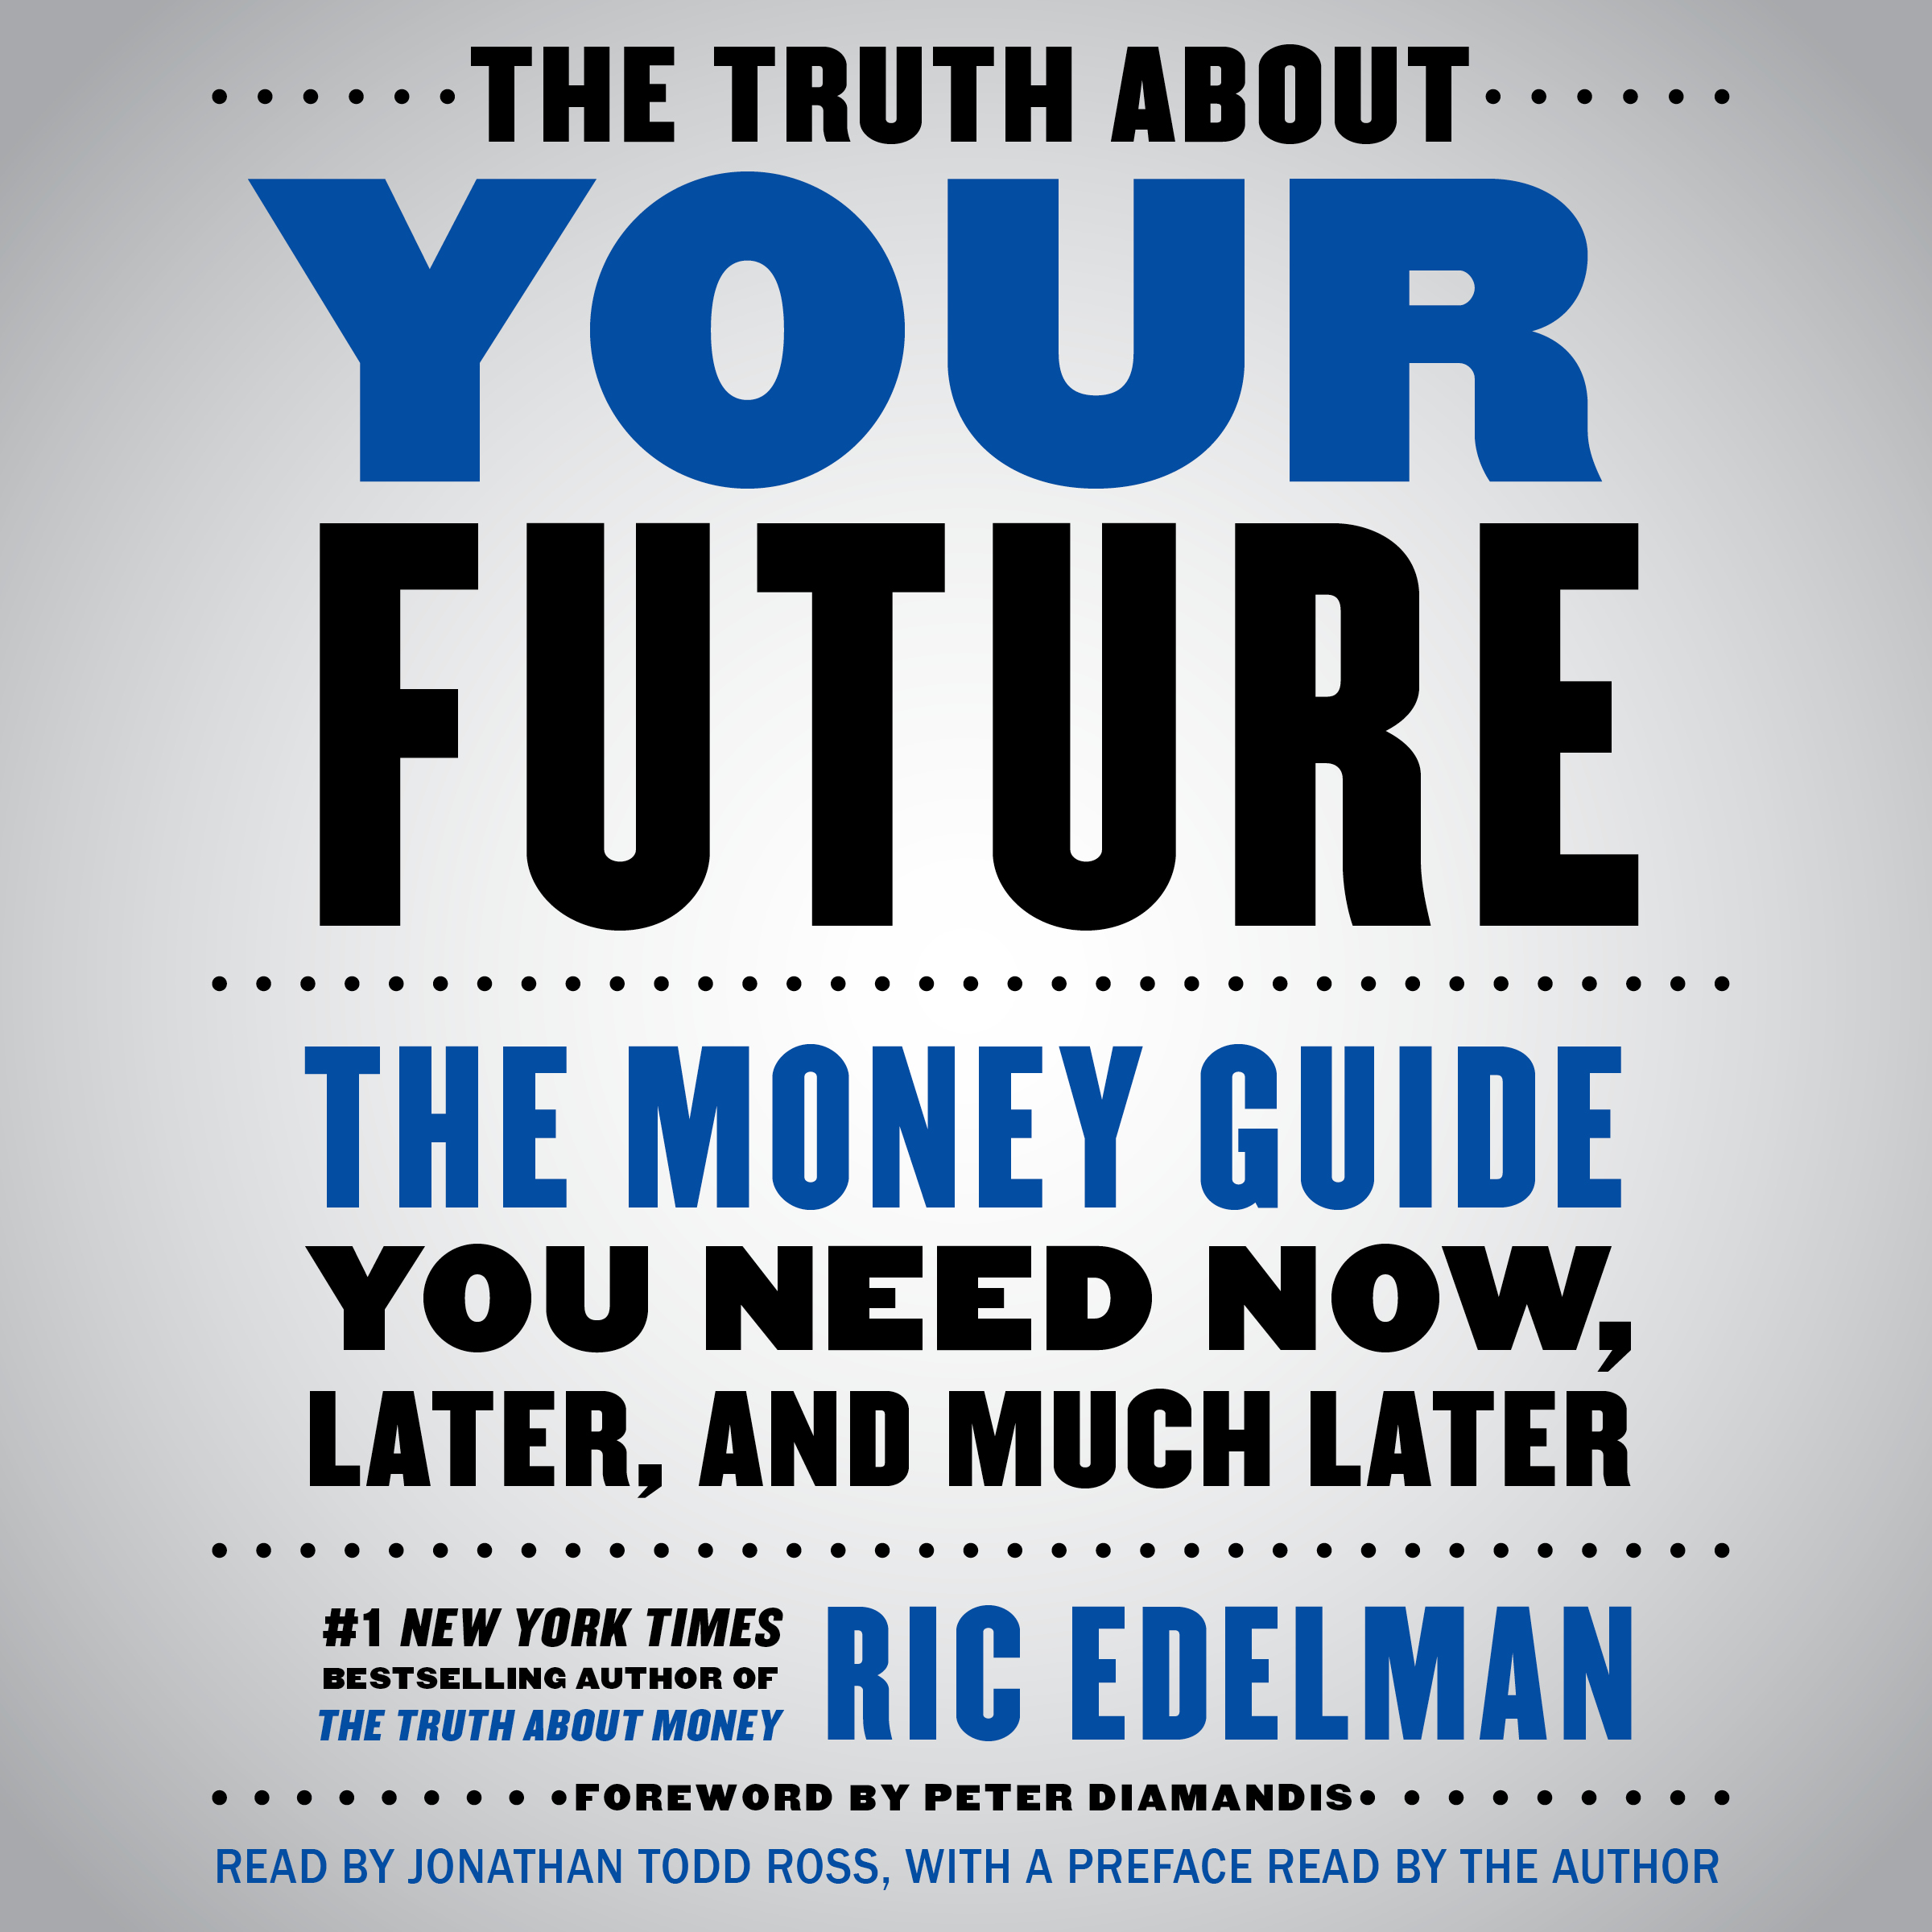 The truth about your future 9781508235163 hr